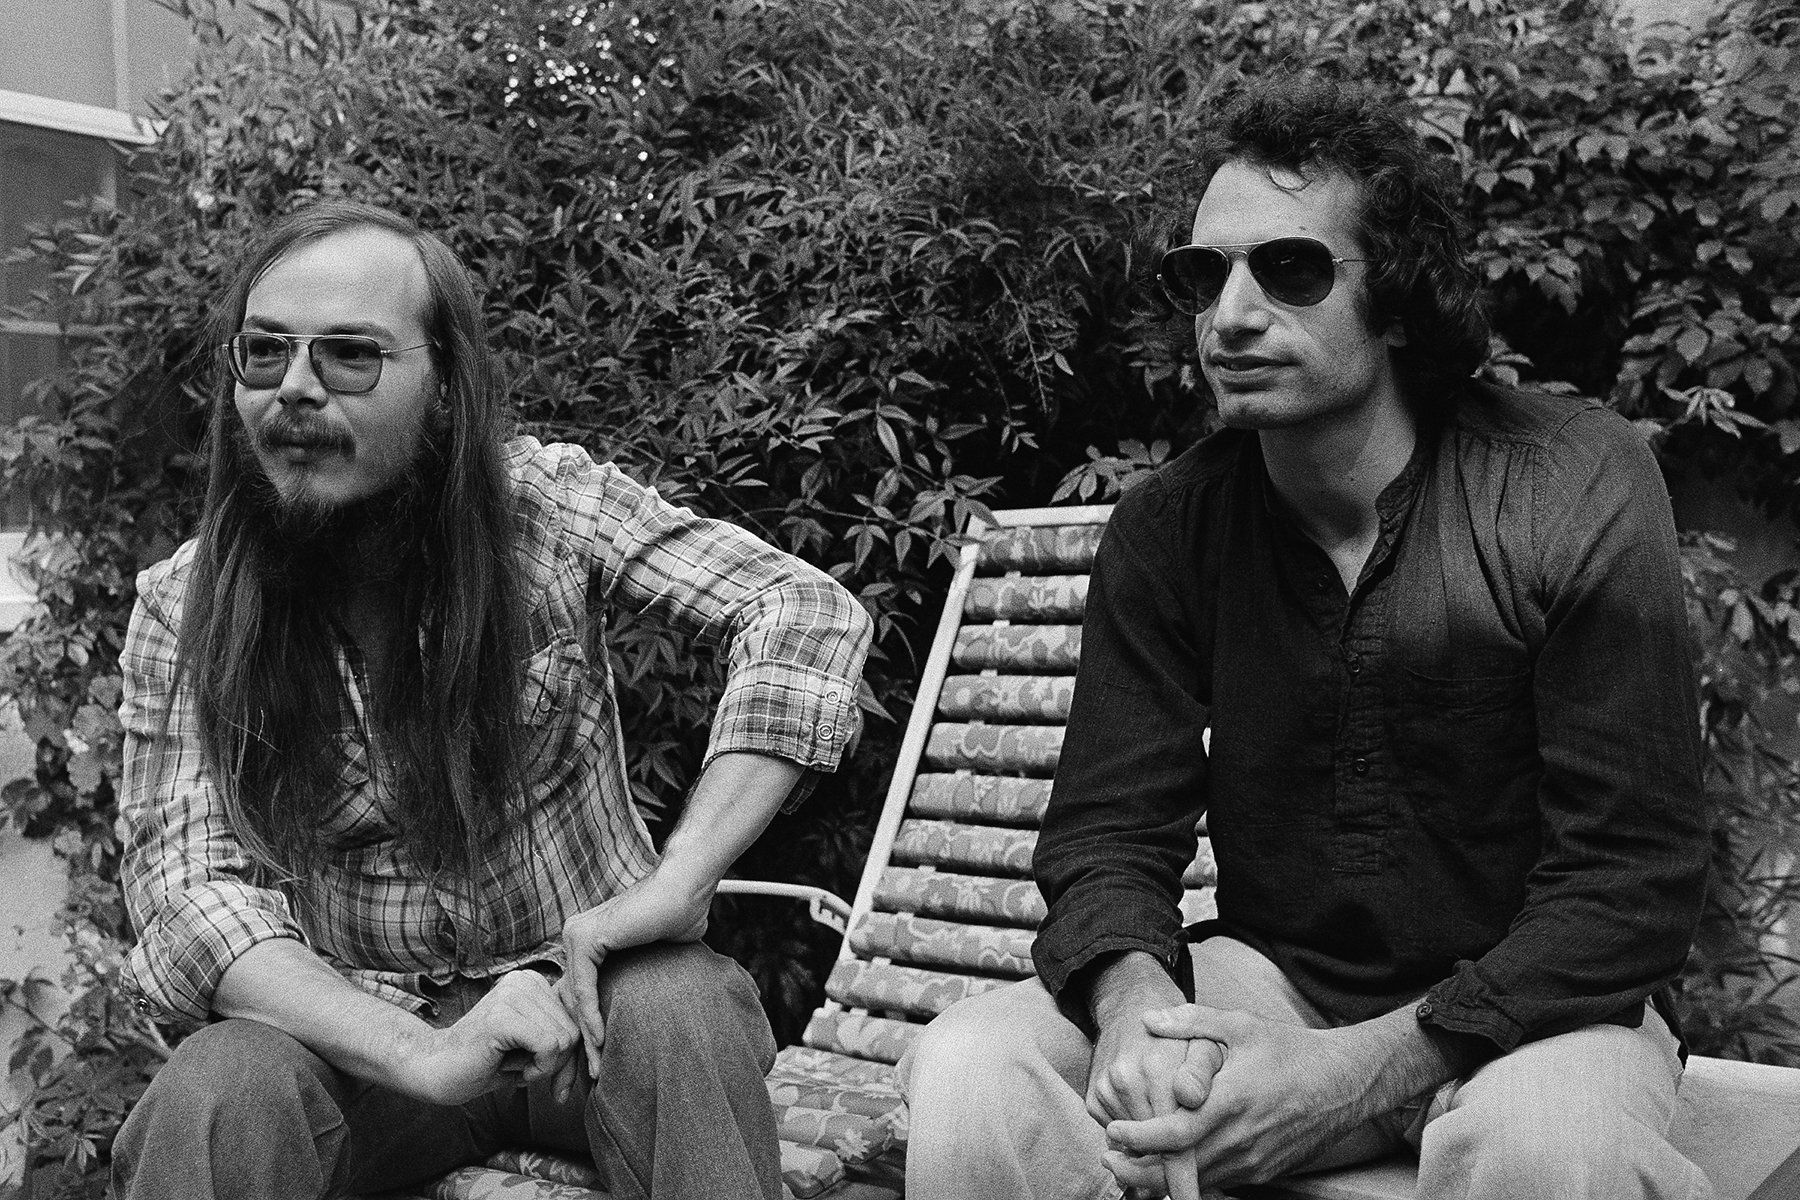 """Walter Becker, left, and Donald Fagen are Steely Dan, shown in Los Angeles, Oct. 29, 1977. They say they've never really produced commercial music - music conceived and packaged strictly with an eye on the charts. """"Aja,"""" their first album in nearly two years, is experiencing brisk sales. Their music is not in the form of jazz, nor is it a technical fusion of rock and jazz - it's solid rock made with the free light spirit of jazz. (AP Photo/Nick Ut)"""